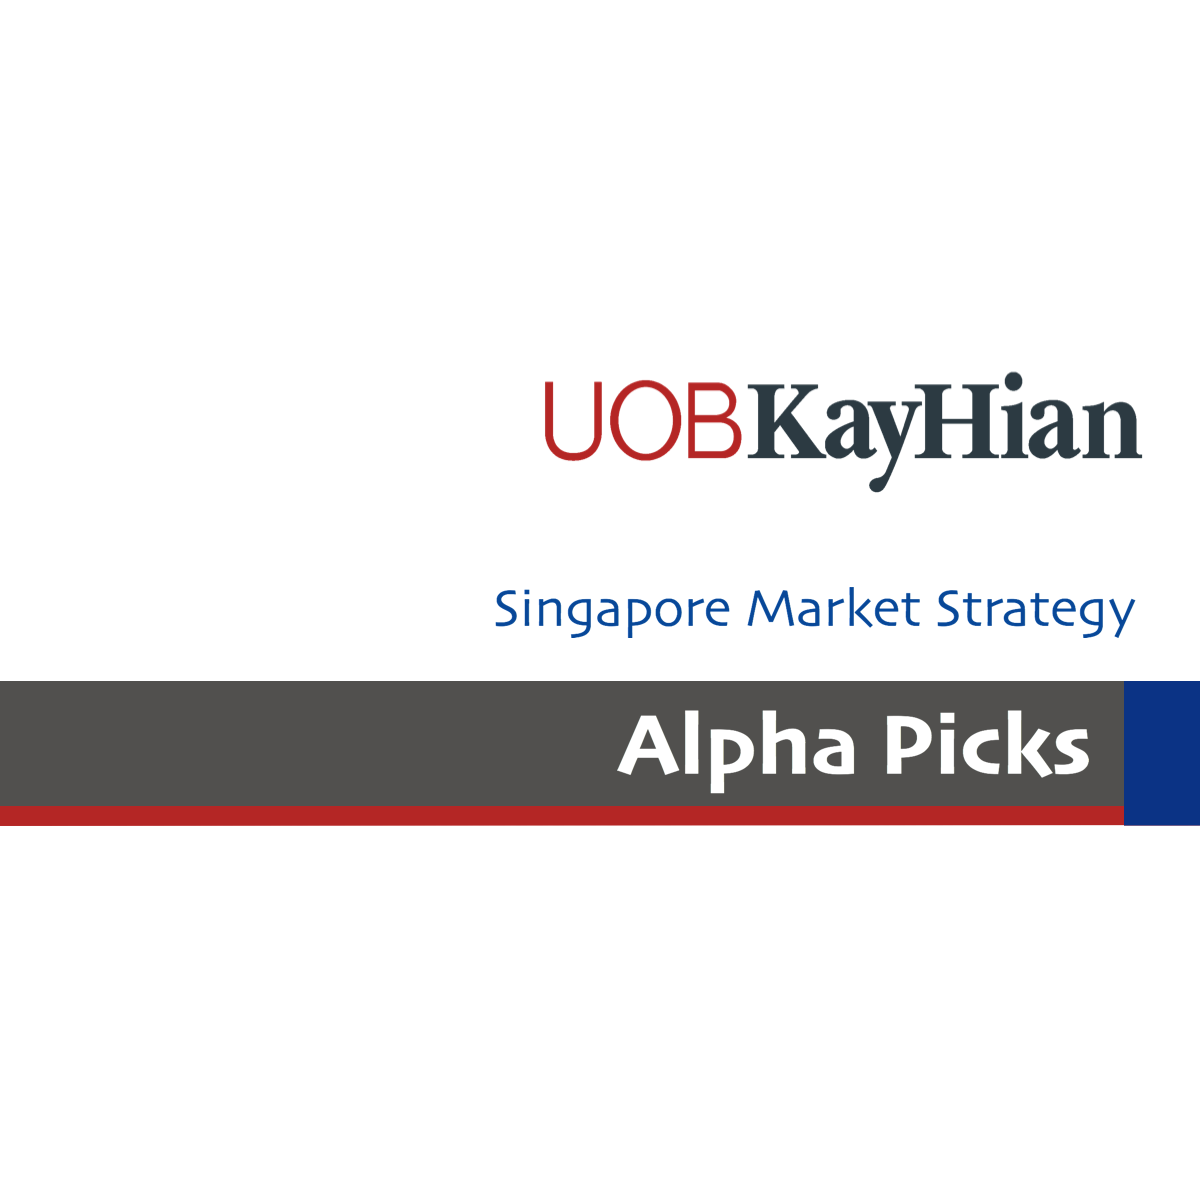 SINGAPORE Alpha Picks - UOB Kay Hian 2017-02-06: Top-slicing After Outperformance